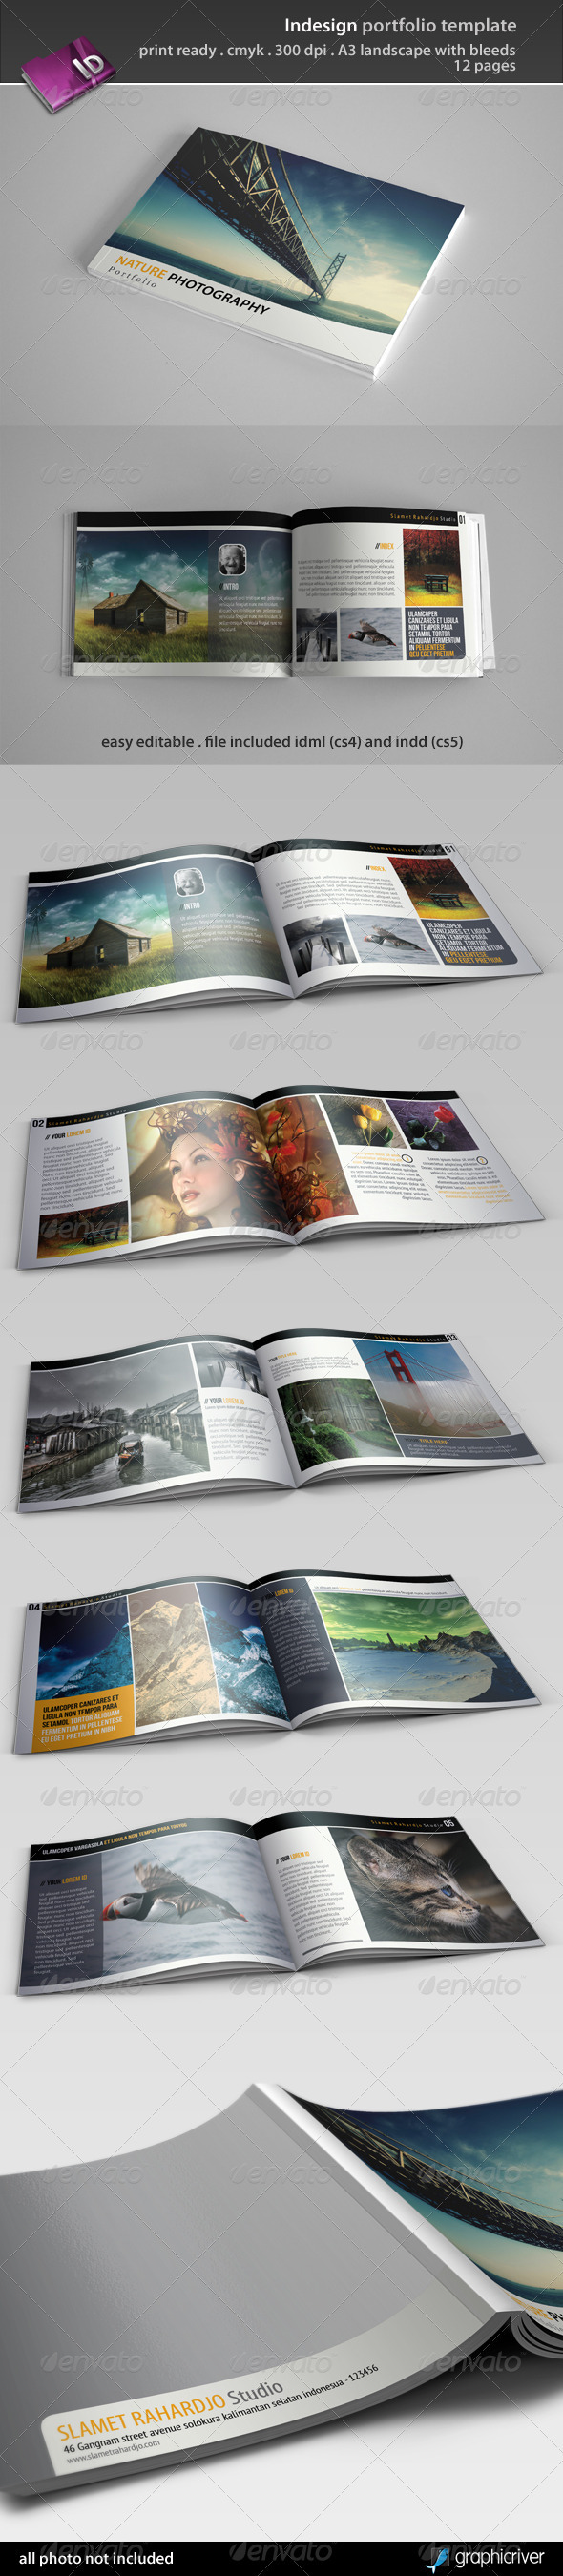 indesign cs5 templates free download - portfolio template indesign free download